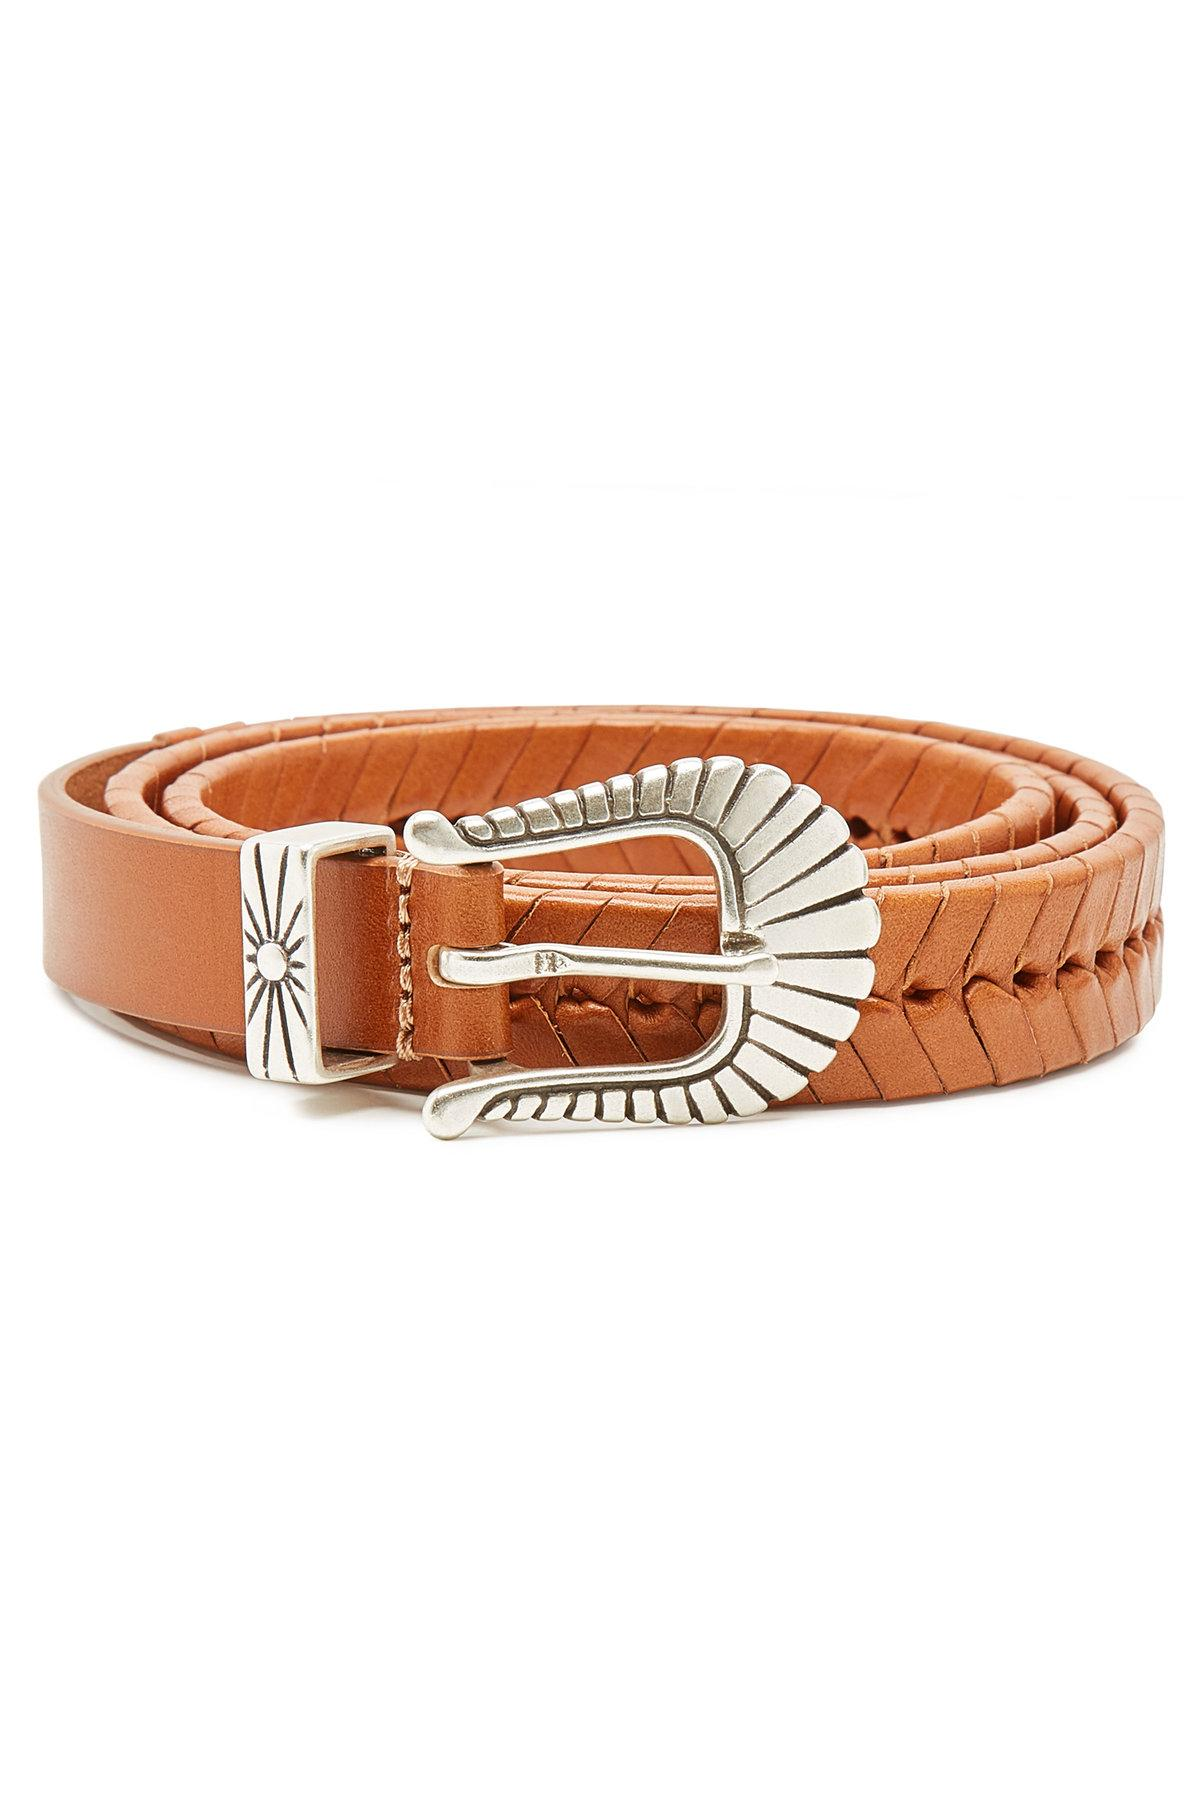 87a777074dfc Isabel Marant Jigoo Leather Belt in Brown - Lyst